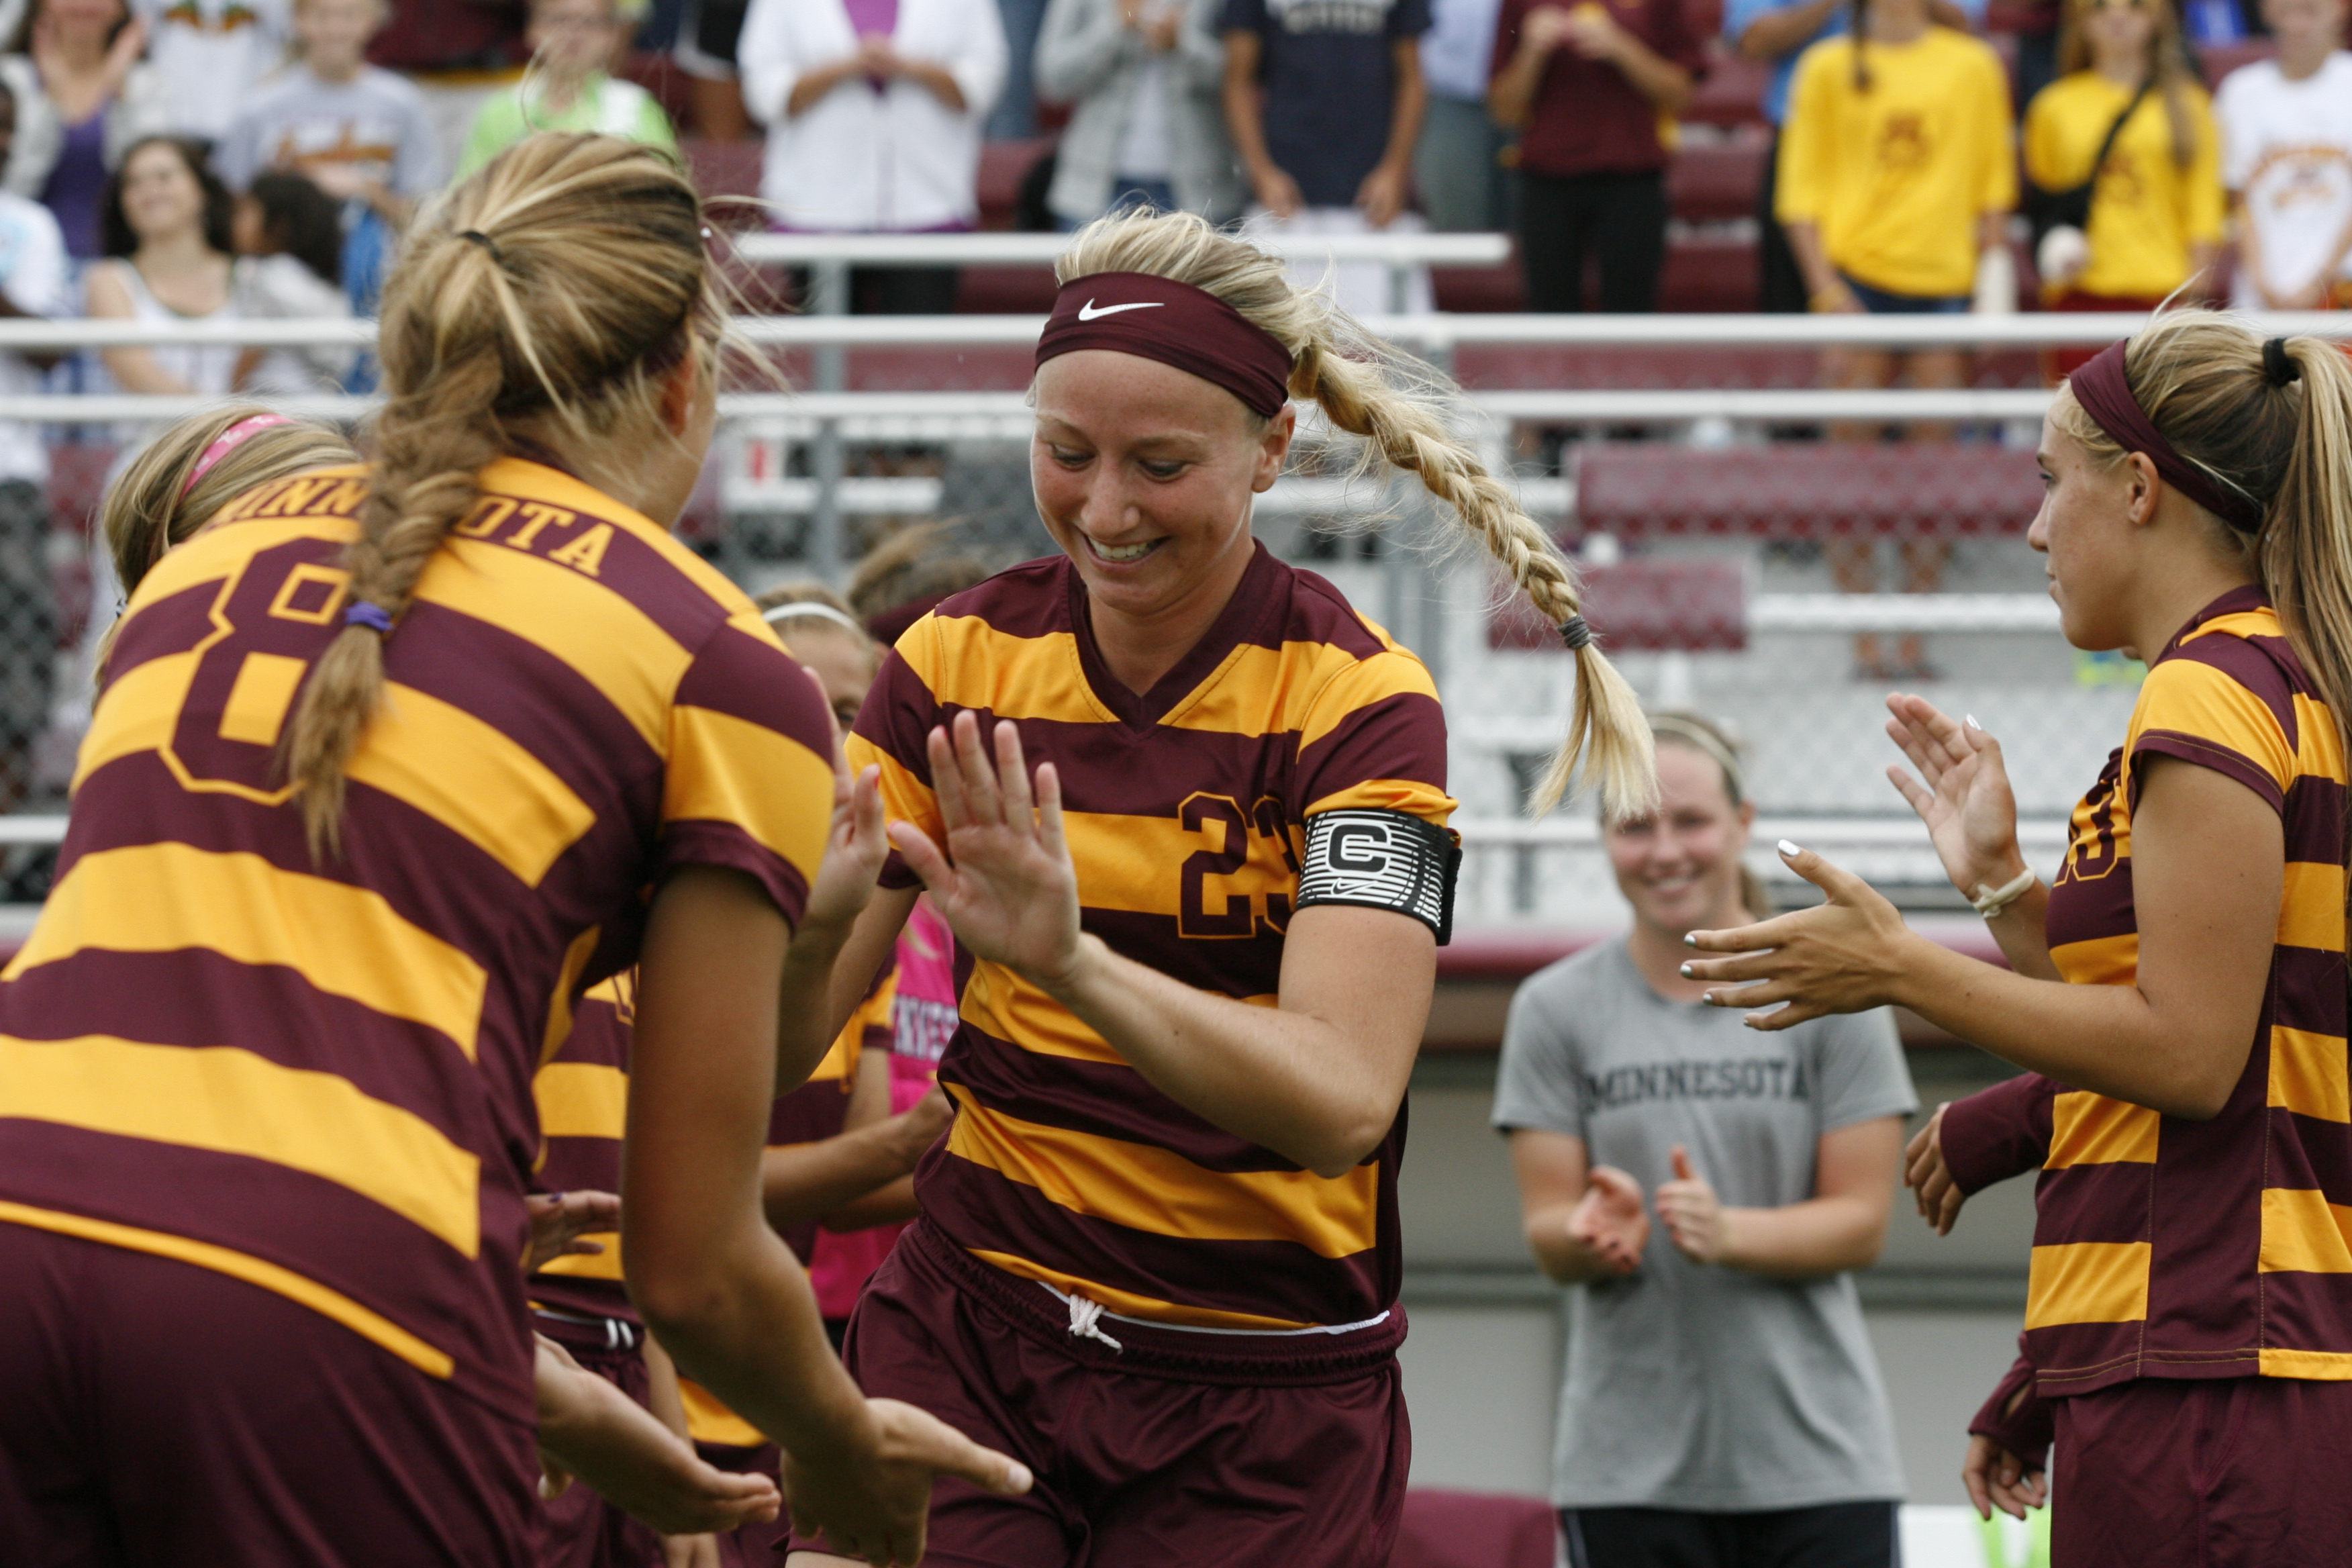 University of Minnesota senior captain MacKenzie Misel running past teammates at Elizabeth Lyle Robbie Stadium.